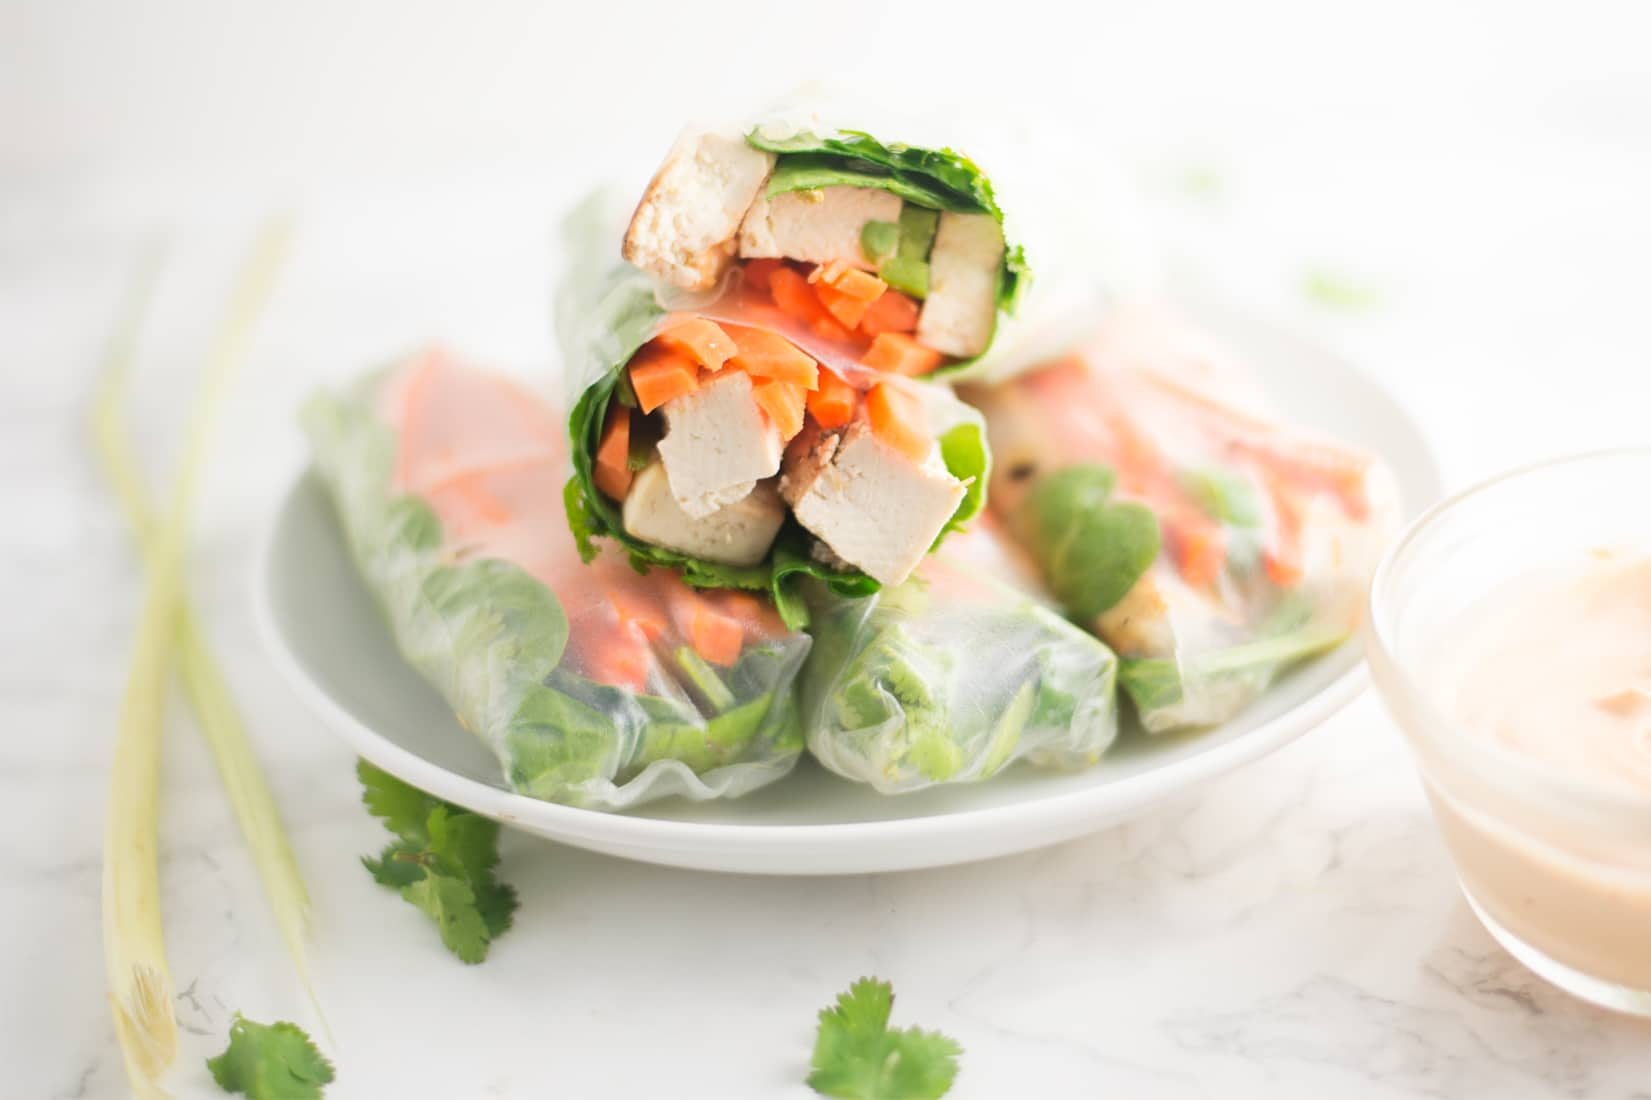 pile of spring rolls on white plate with cilantro, and lemongrass